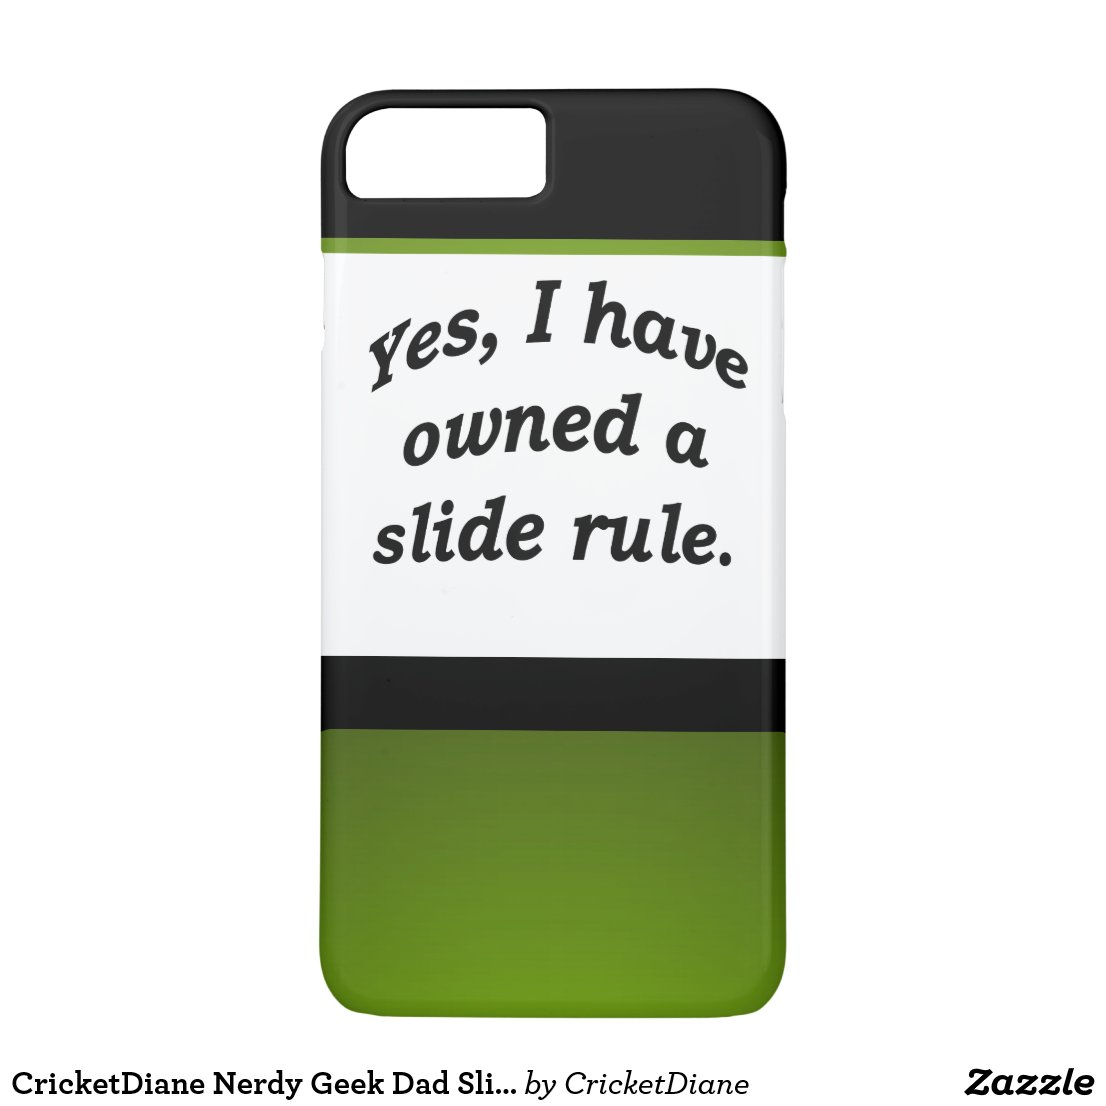 CricketDiane Nerdy Geek Dad Slide Rule STEM iPhone 8 Plus/7 Plus Case